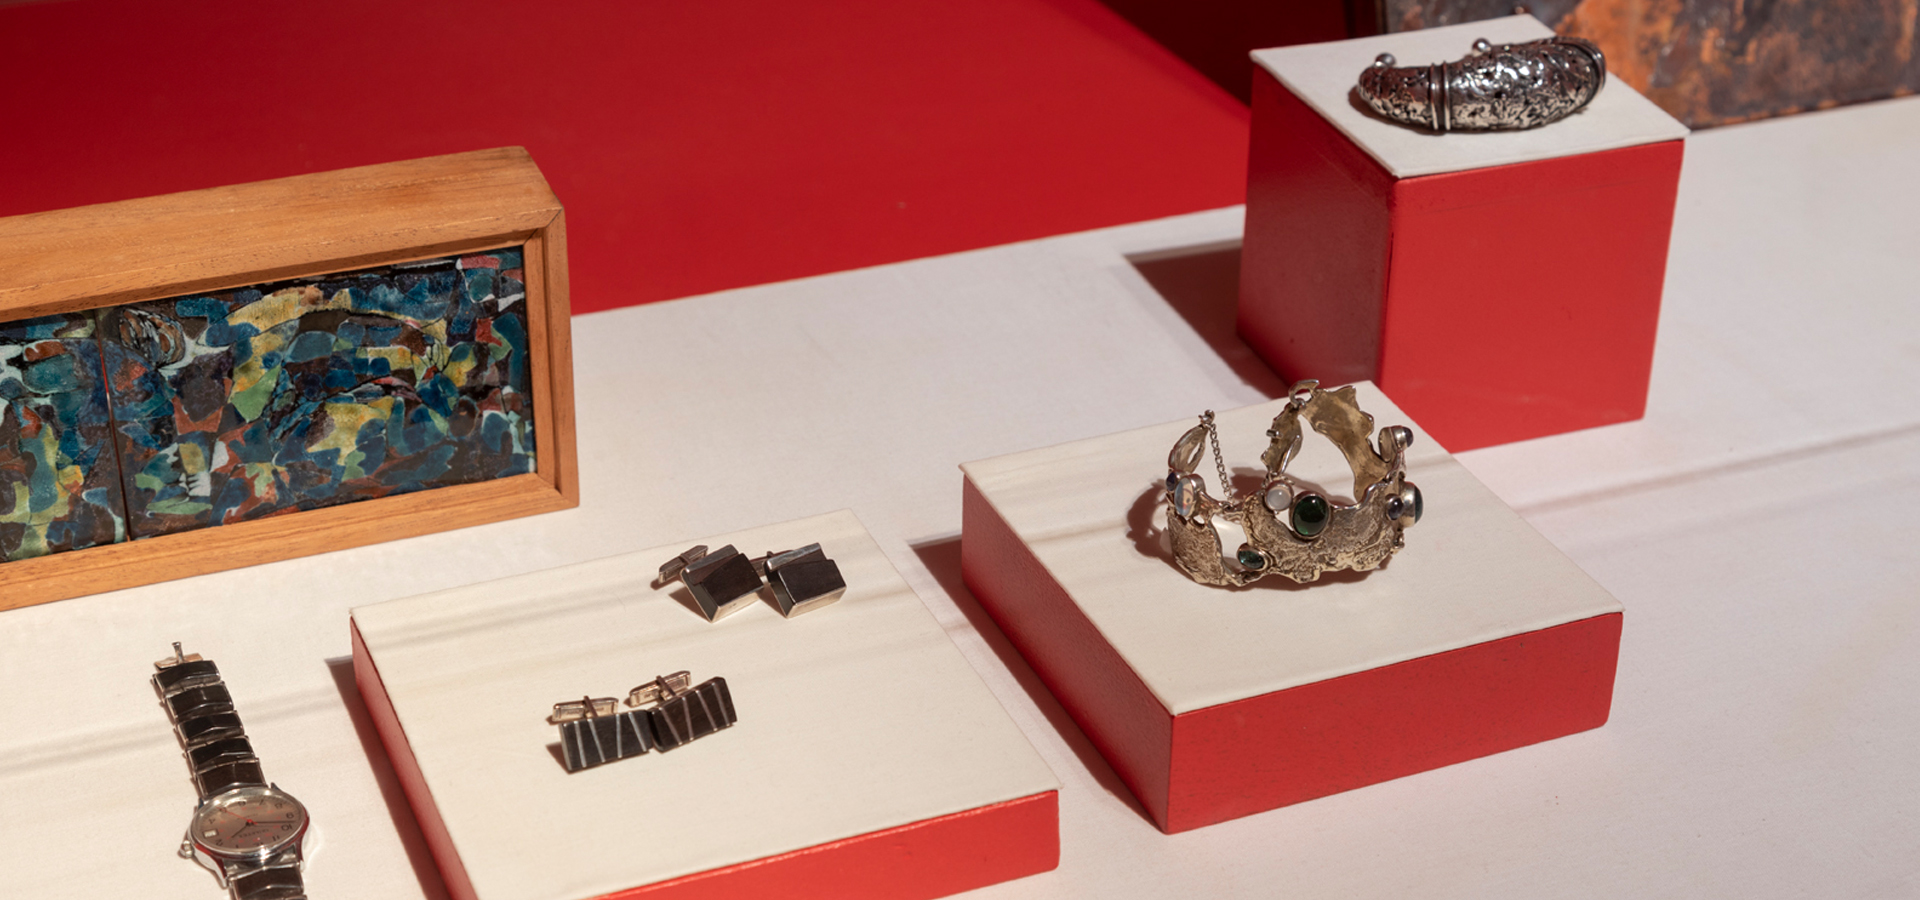 Jewelry on display in gallery with red walls as backdrop